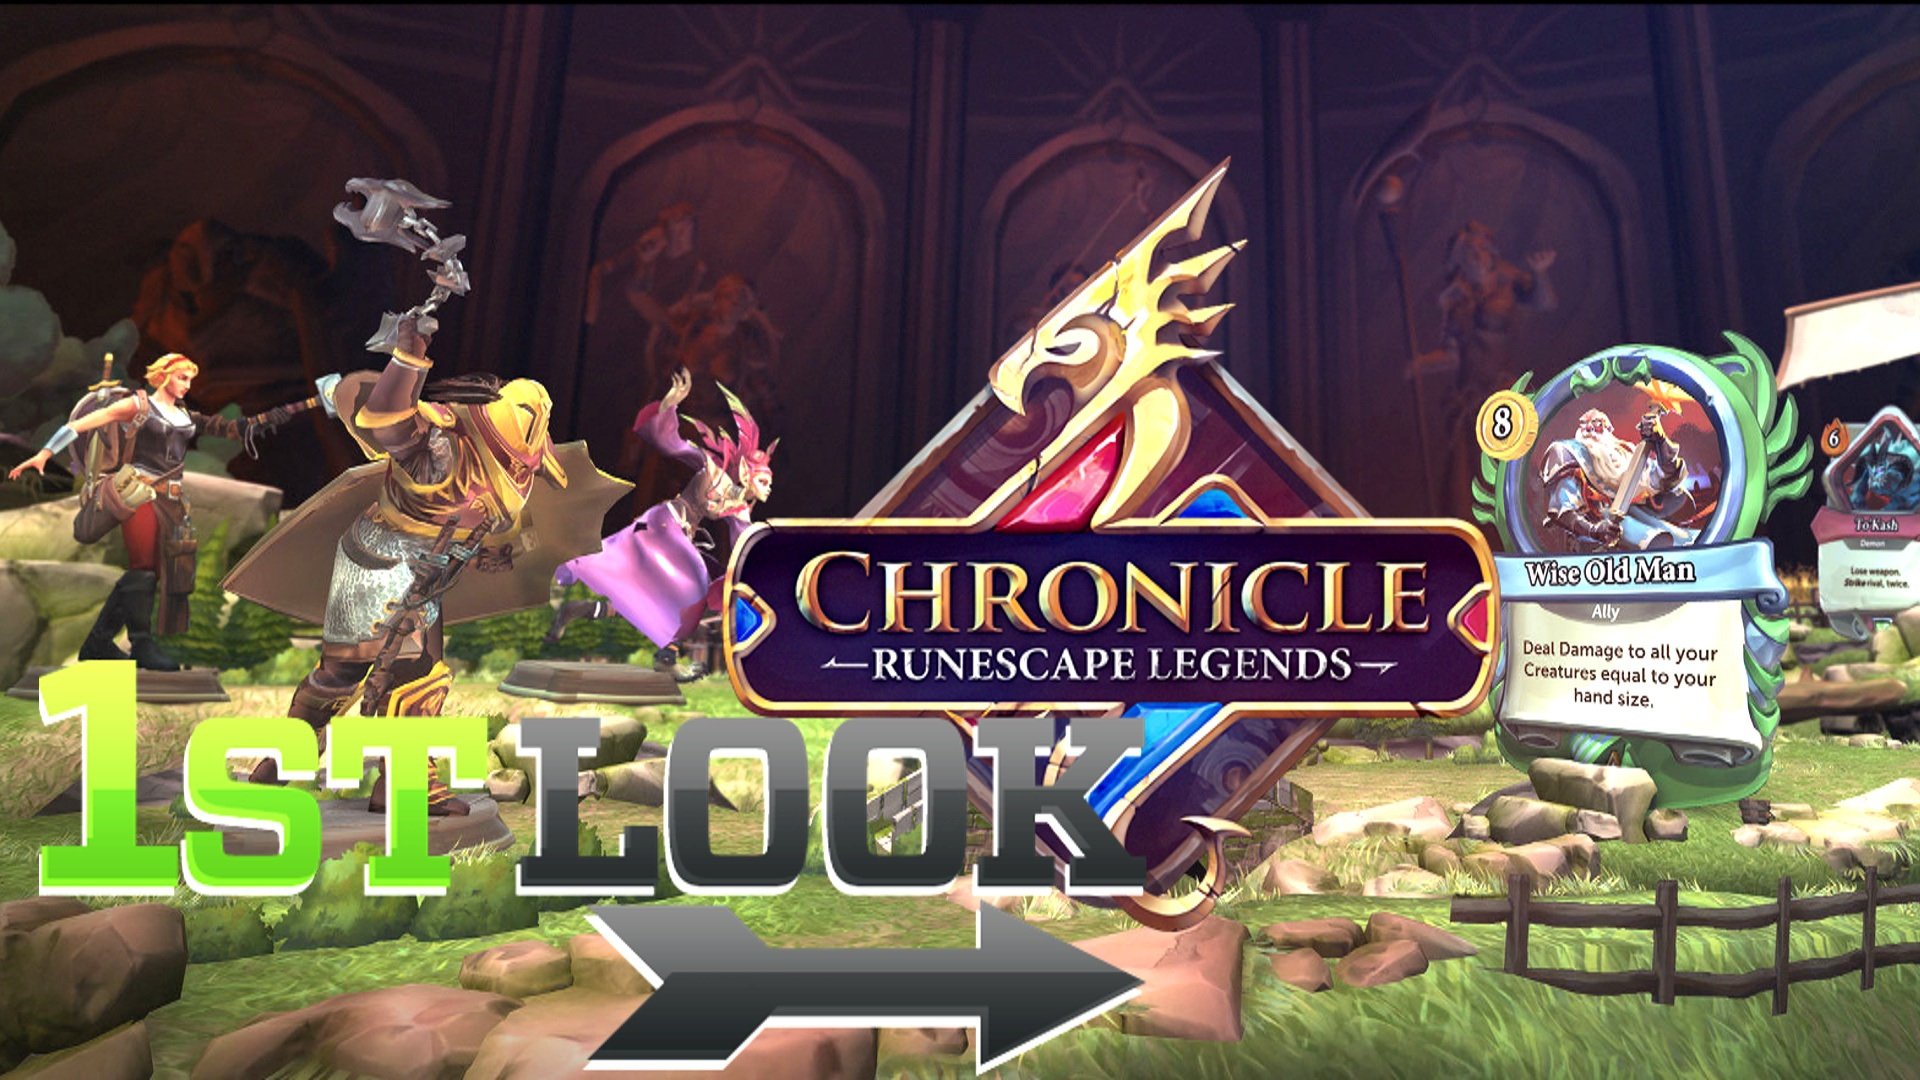 Chronicle: RuneScape Legends - First Look